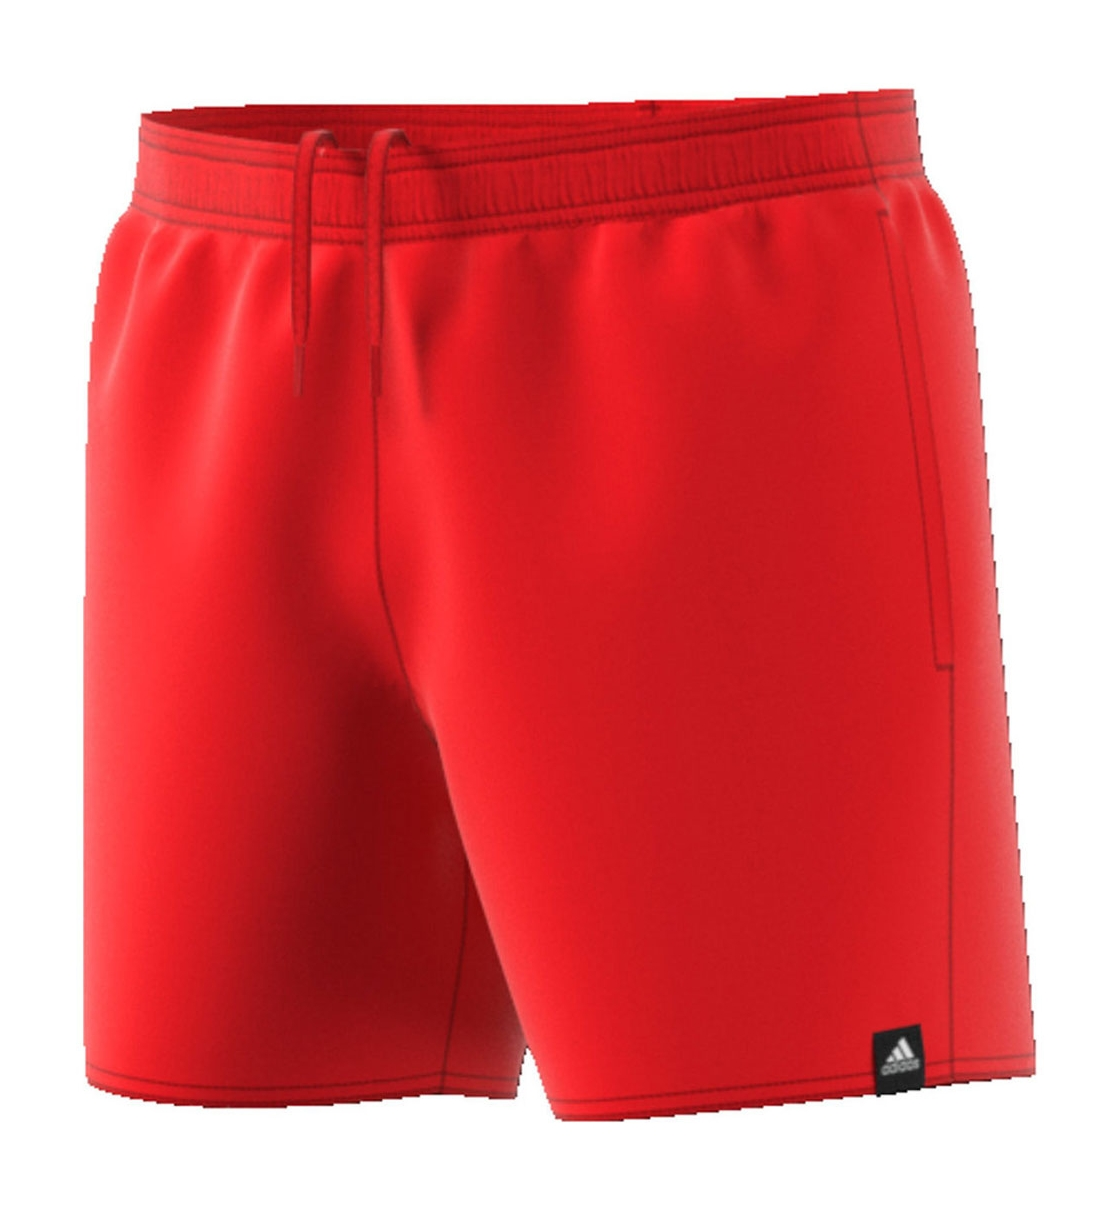 Adidas Ss19 Solid Short Short-Length